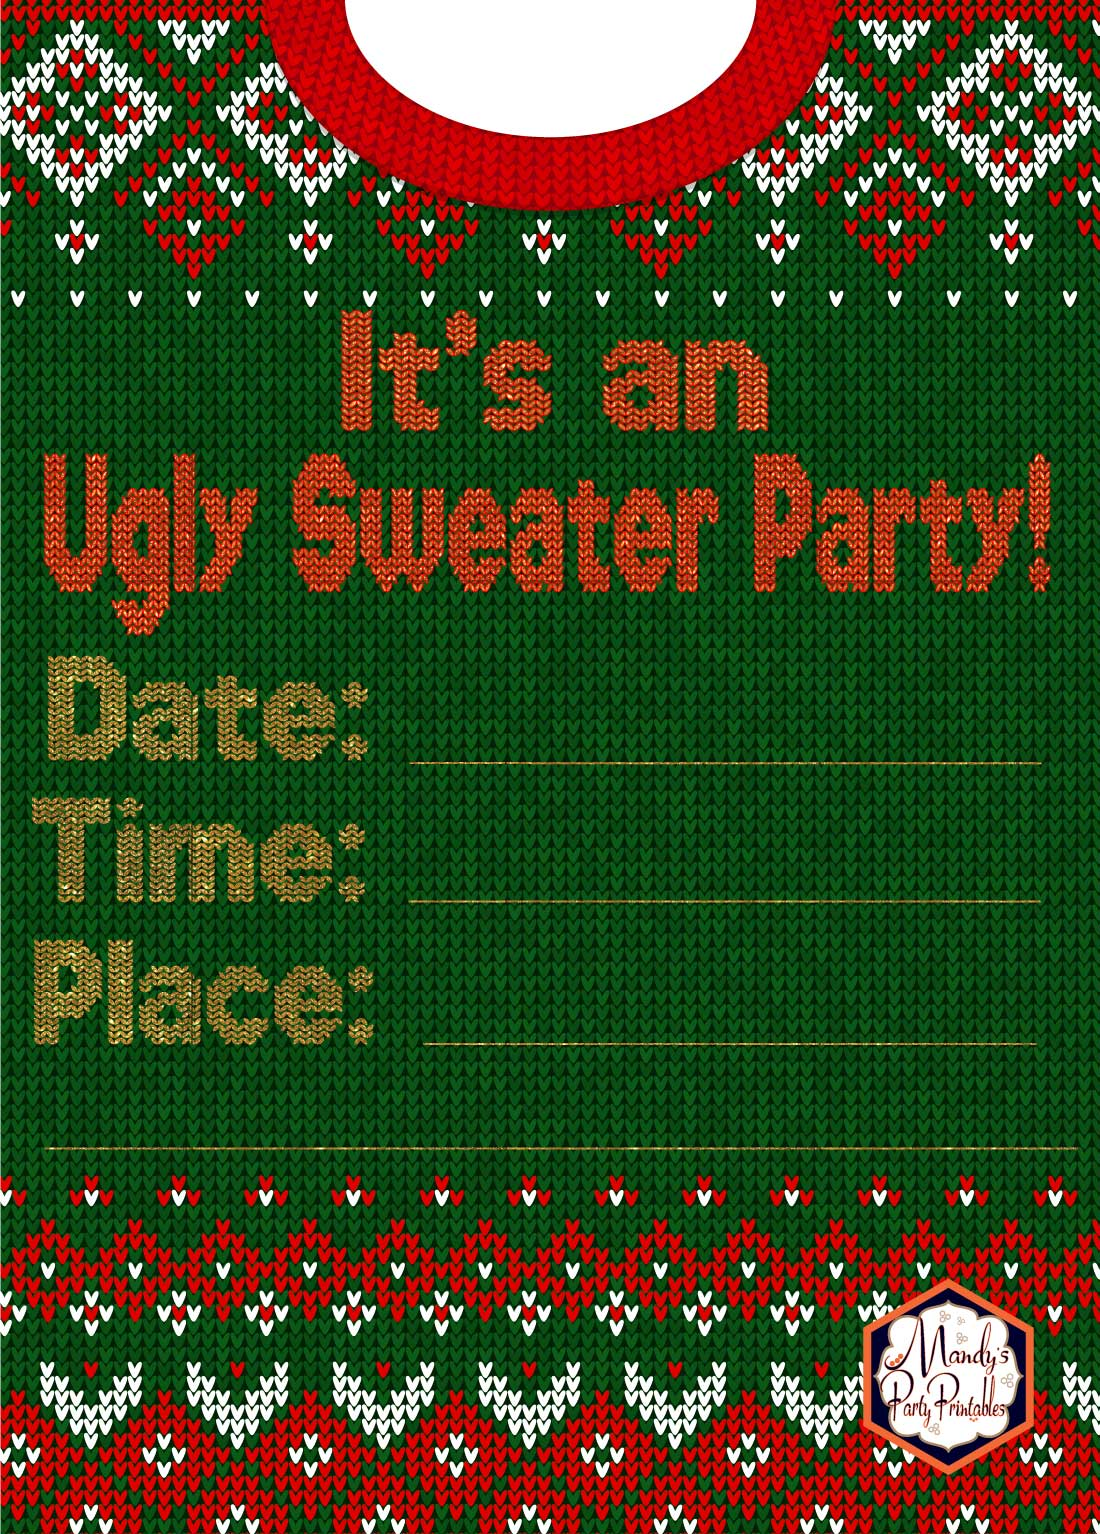 Ugly Sweater Party Printables | Mandy\'s Party Printables